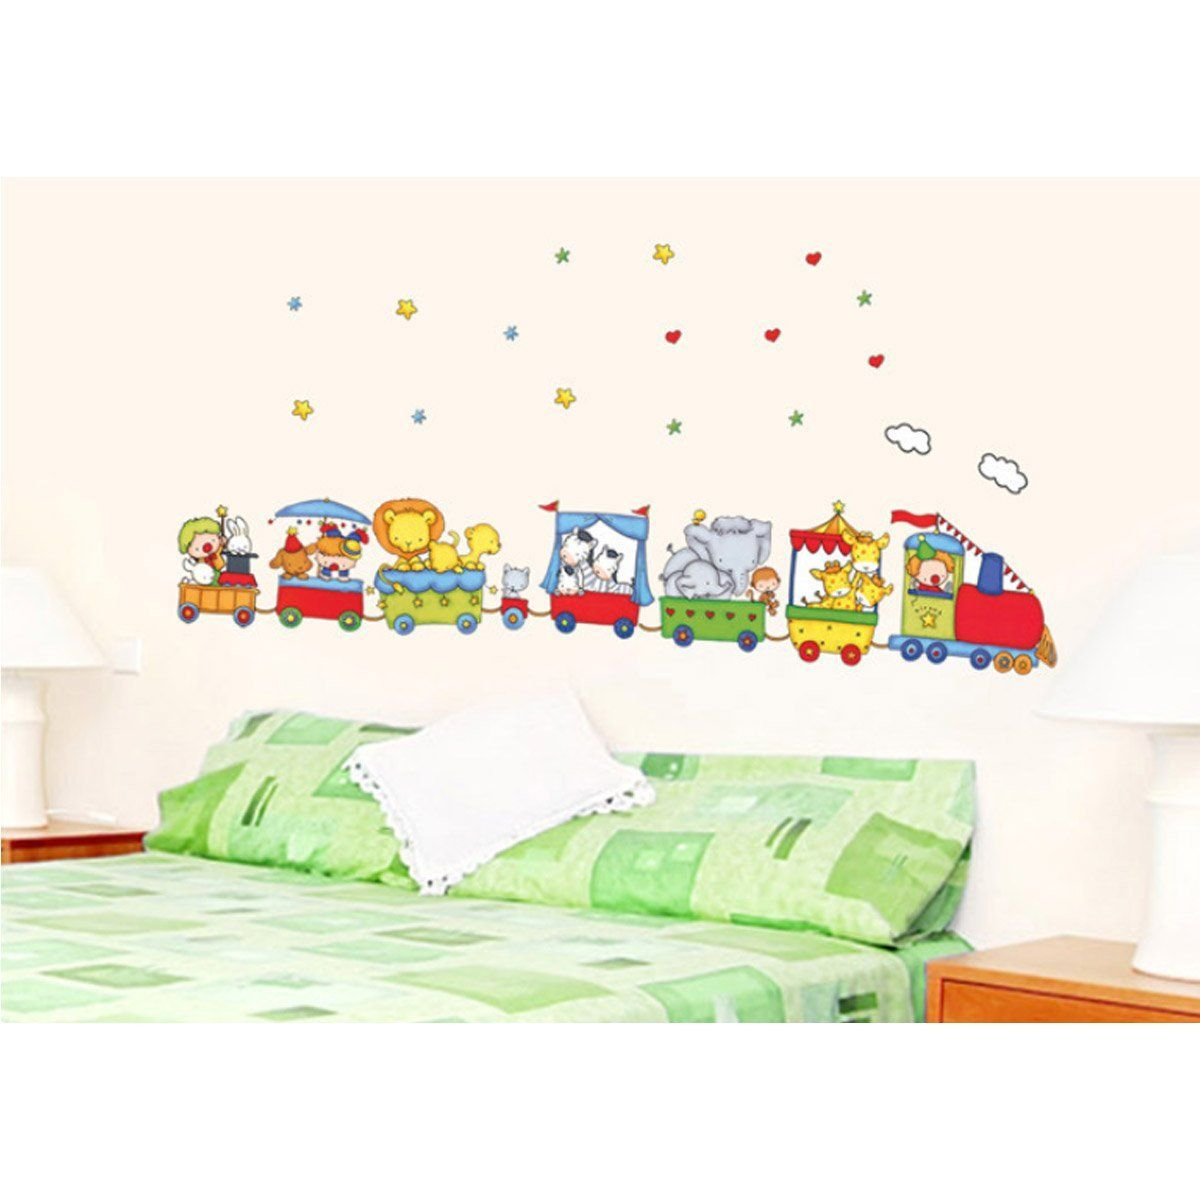 Yesurprise vinilo decorativo infantil pegatina pared for Pegatinas pared dormitorio